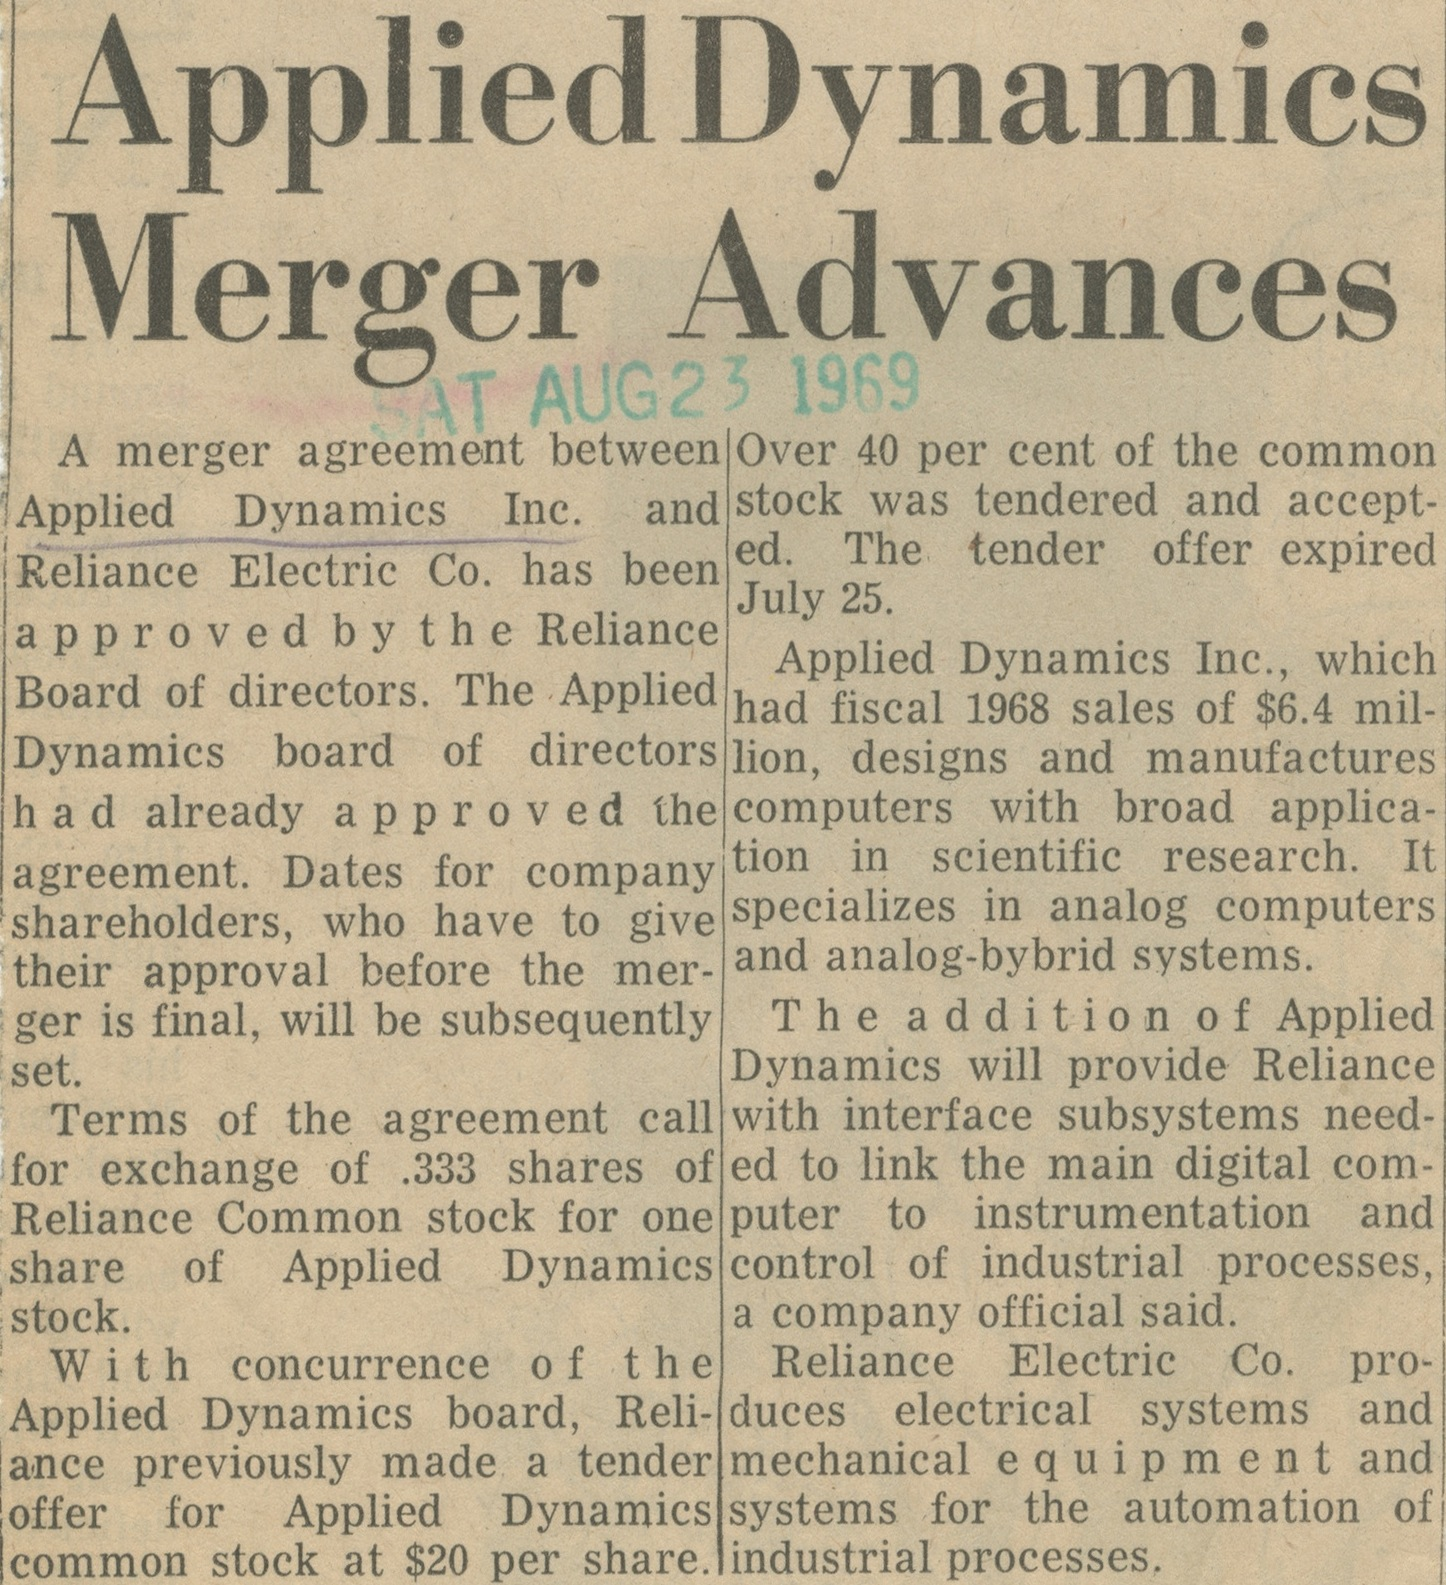 Applied Dynamics Merger Advances image